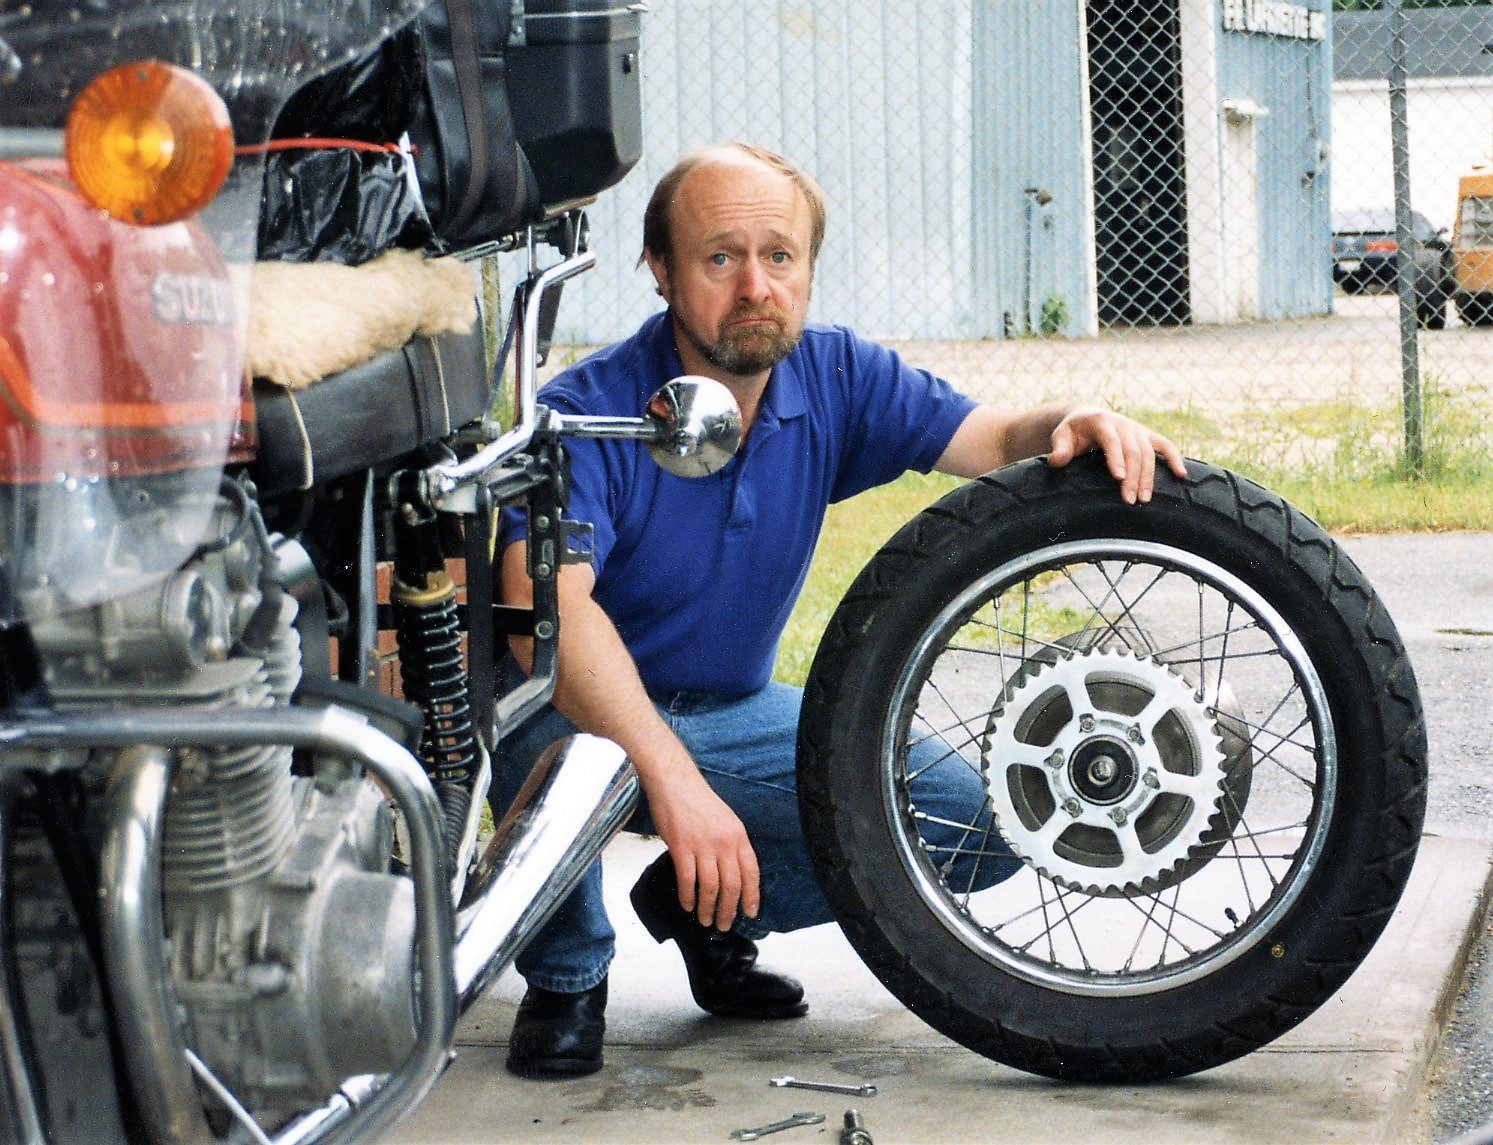 Yet another motorbike experience with Colin - 1992 Space Bike Trip.<br /> <br /> A special friendship that started with a radio trivia question that Colin knew.<br /> His hugs, smiles and laughter were  wonderful and will be missed.<br /> Alice & Bill